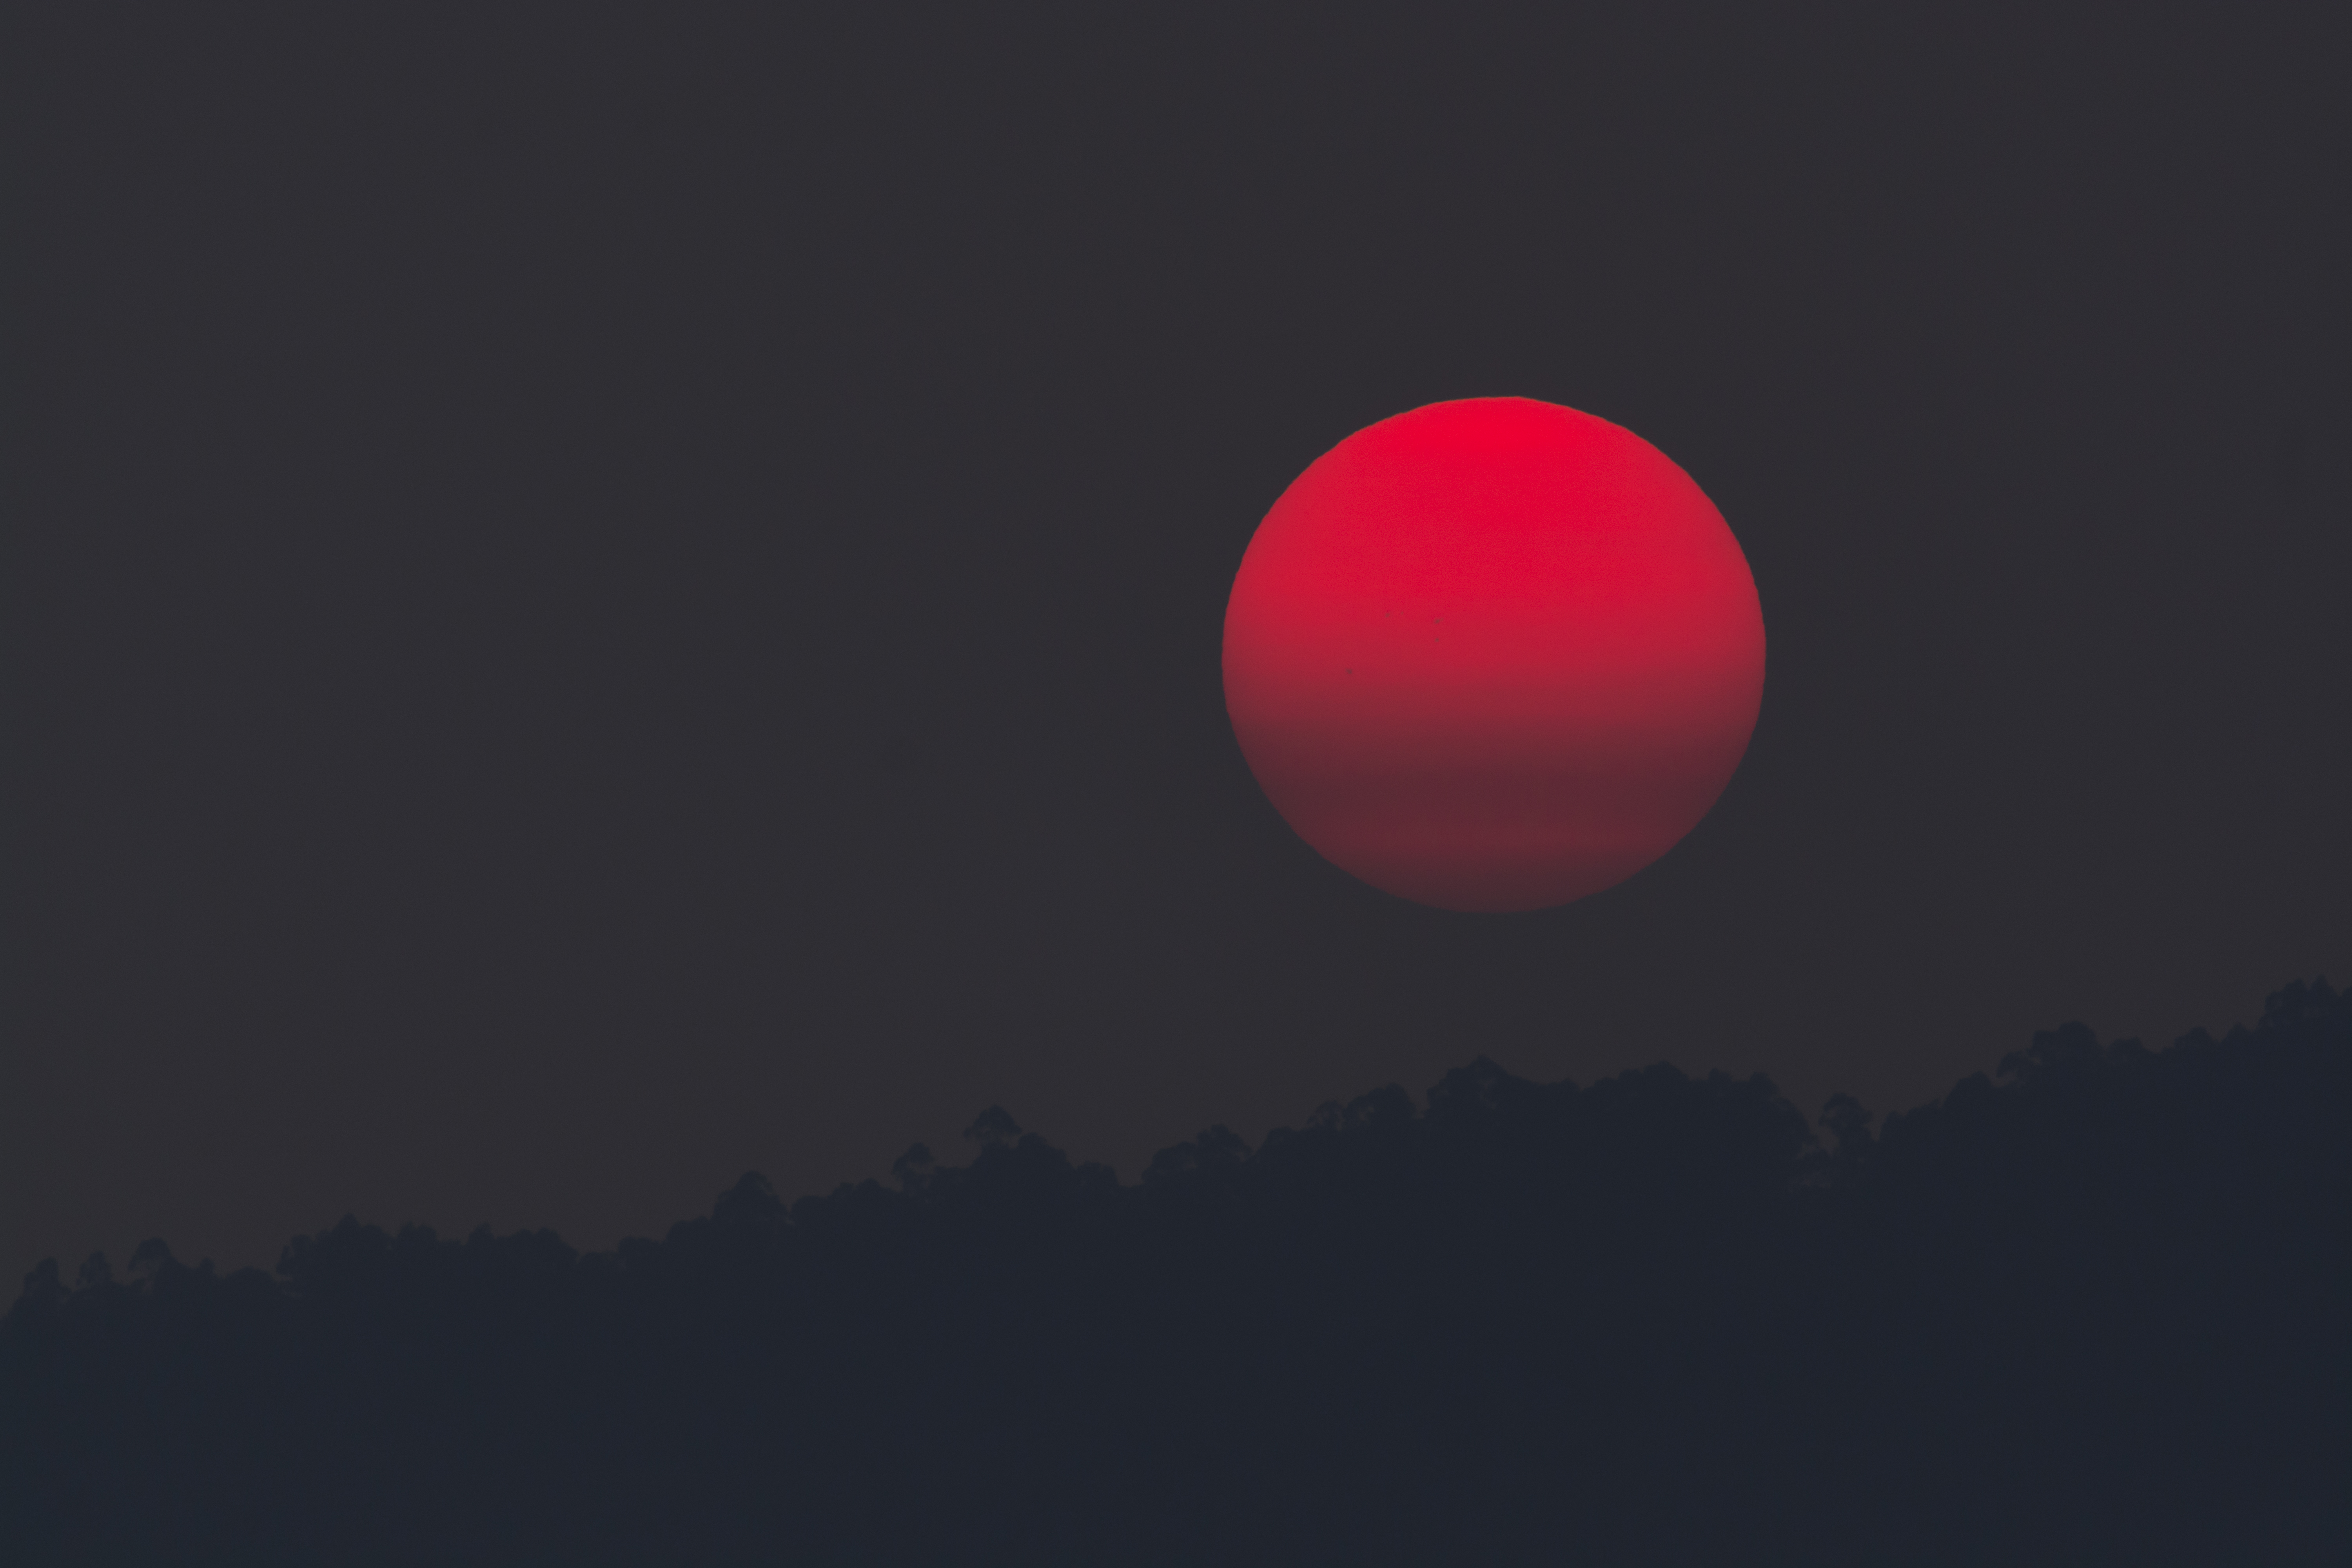 red moon images - photo #46